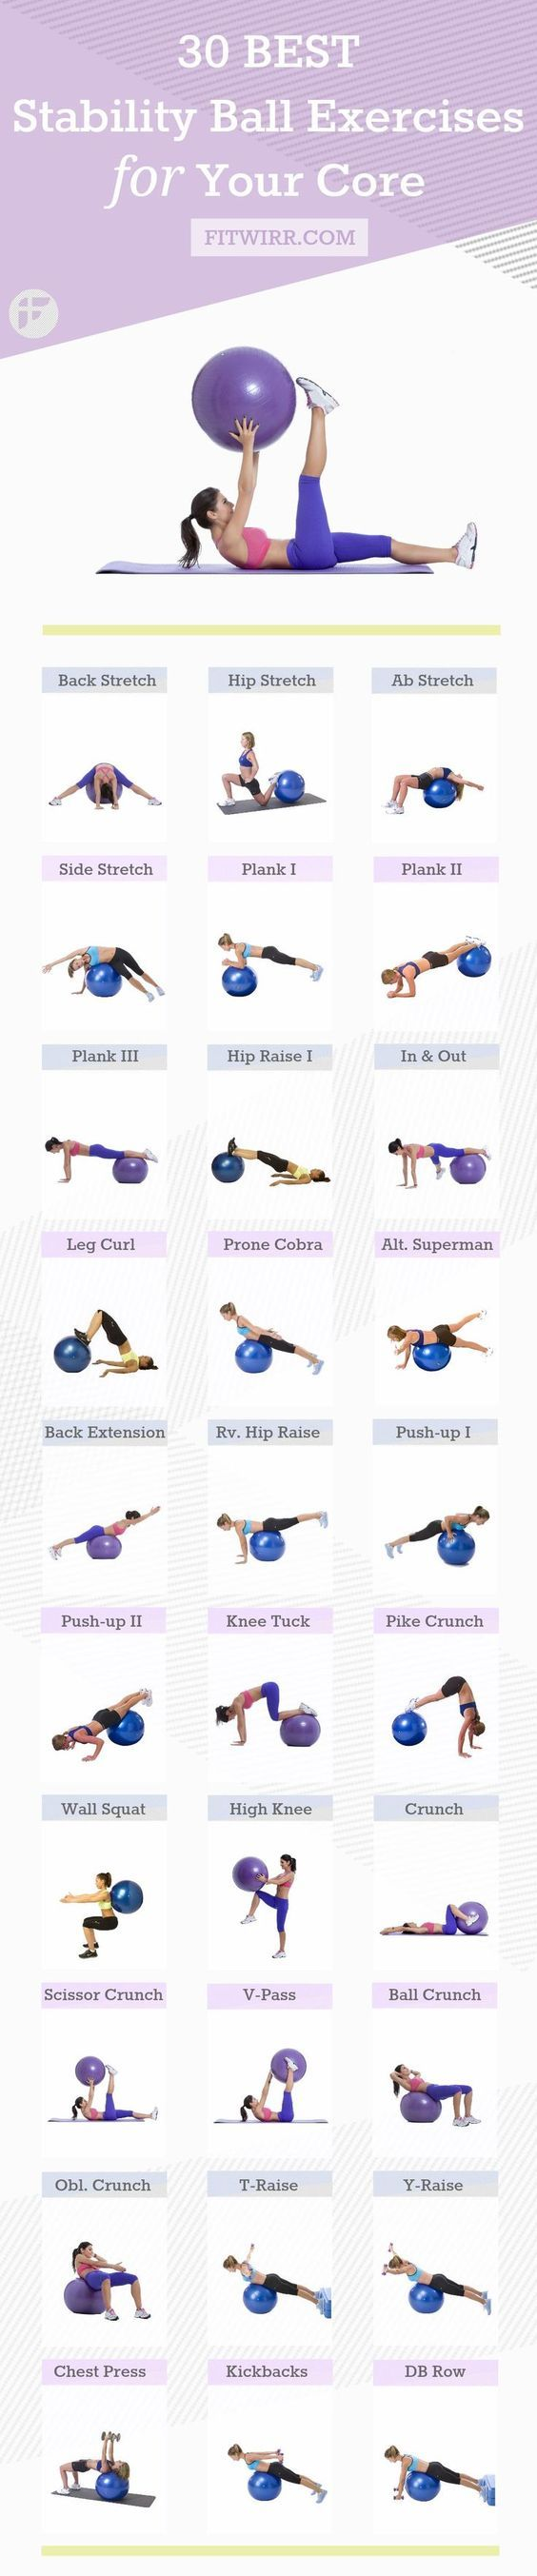 30 Best Stability Ball Exercises for Beginners – Jewell Cochran